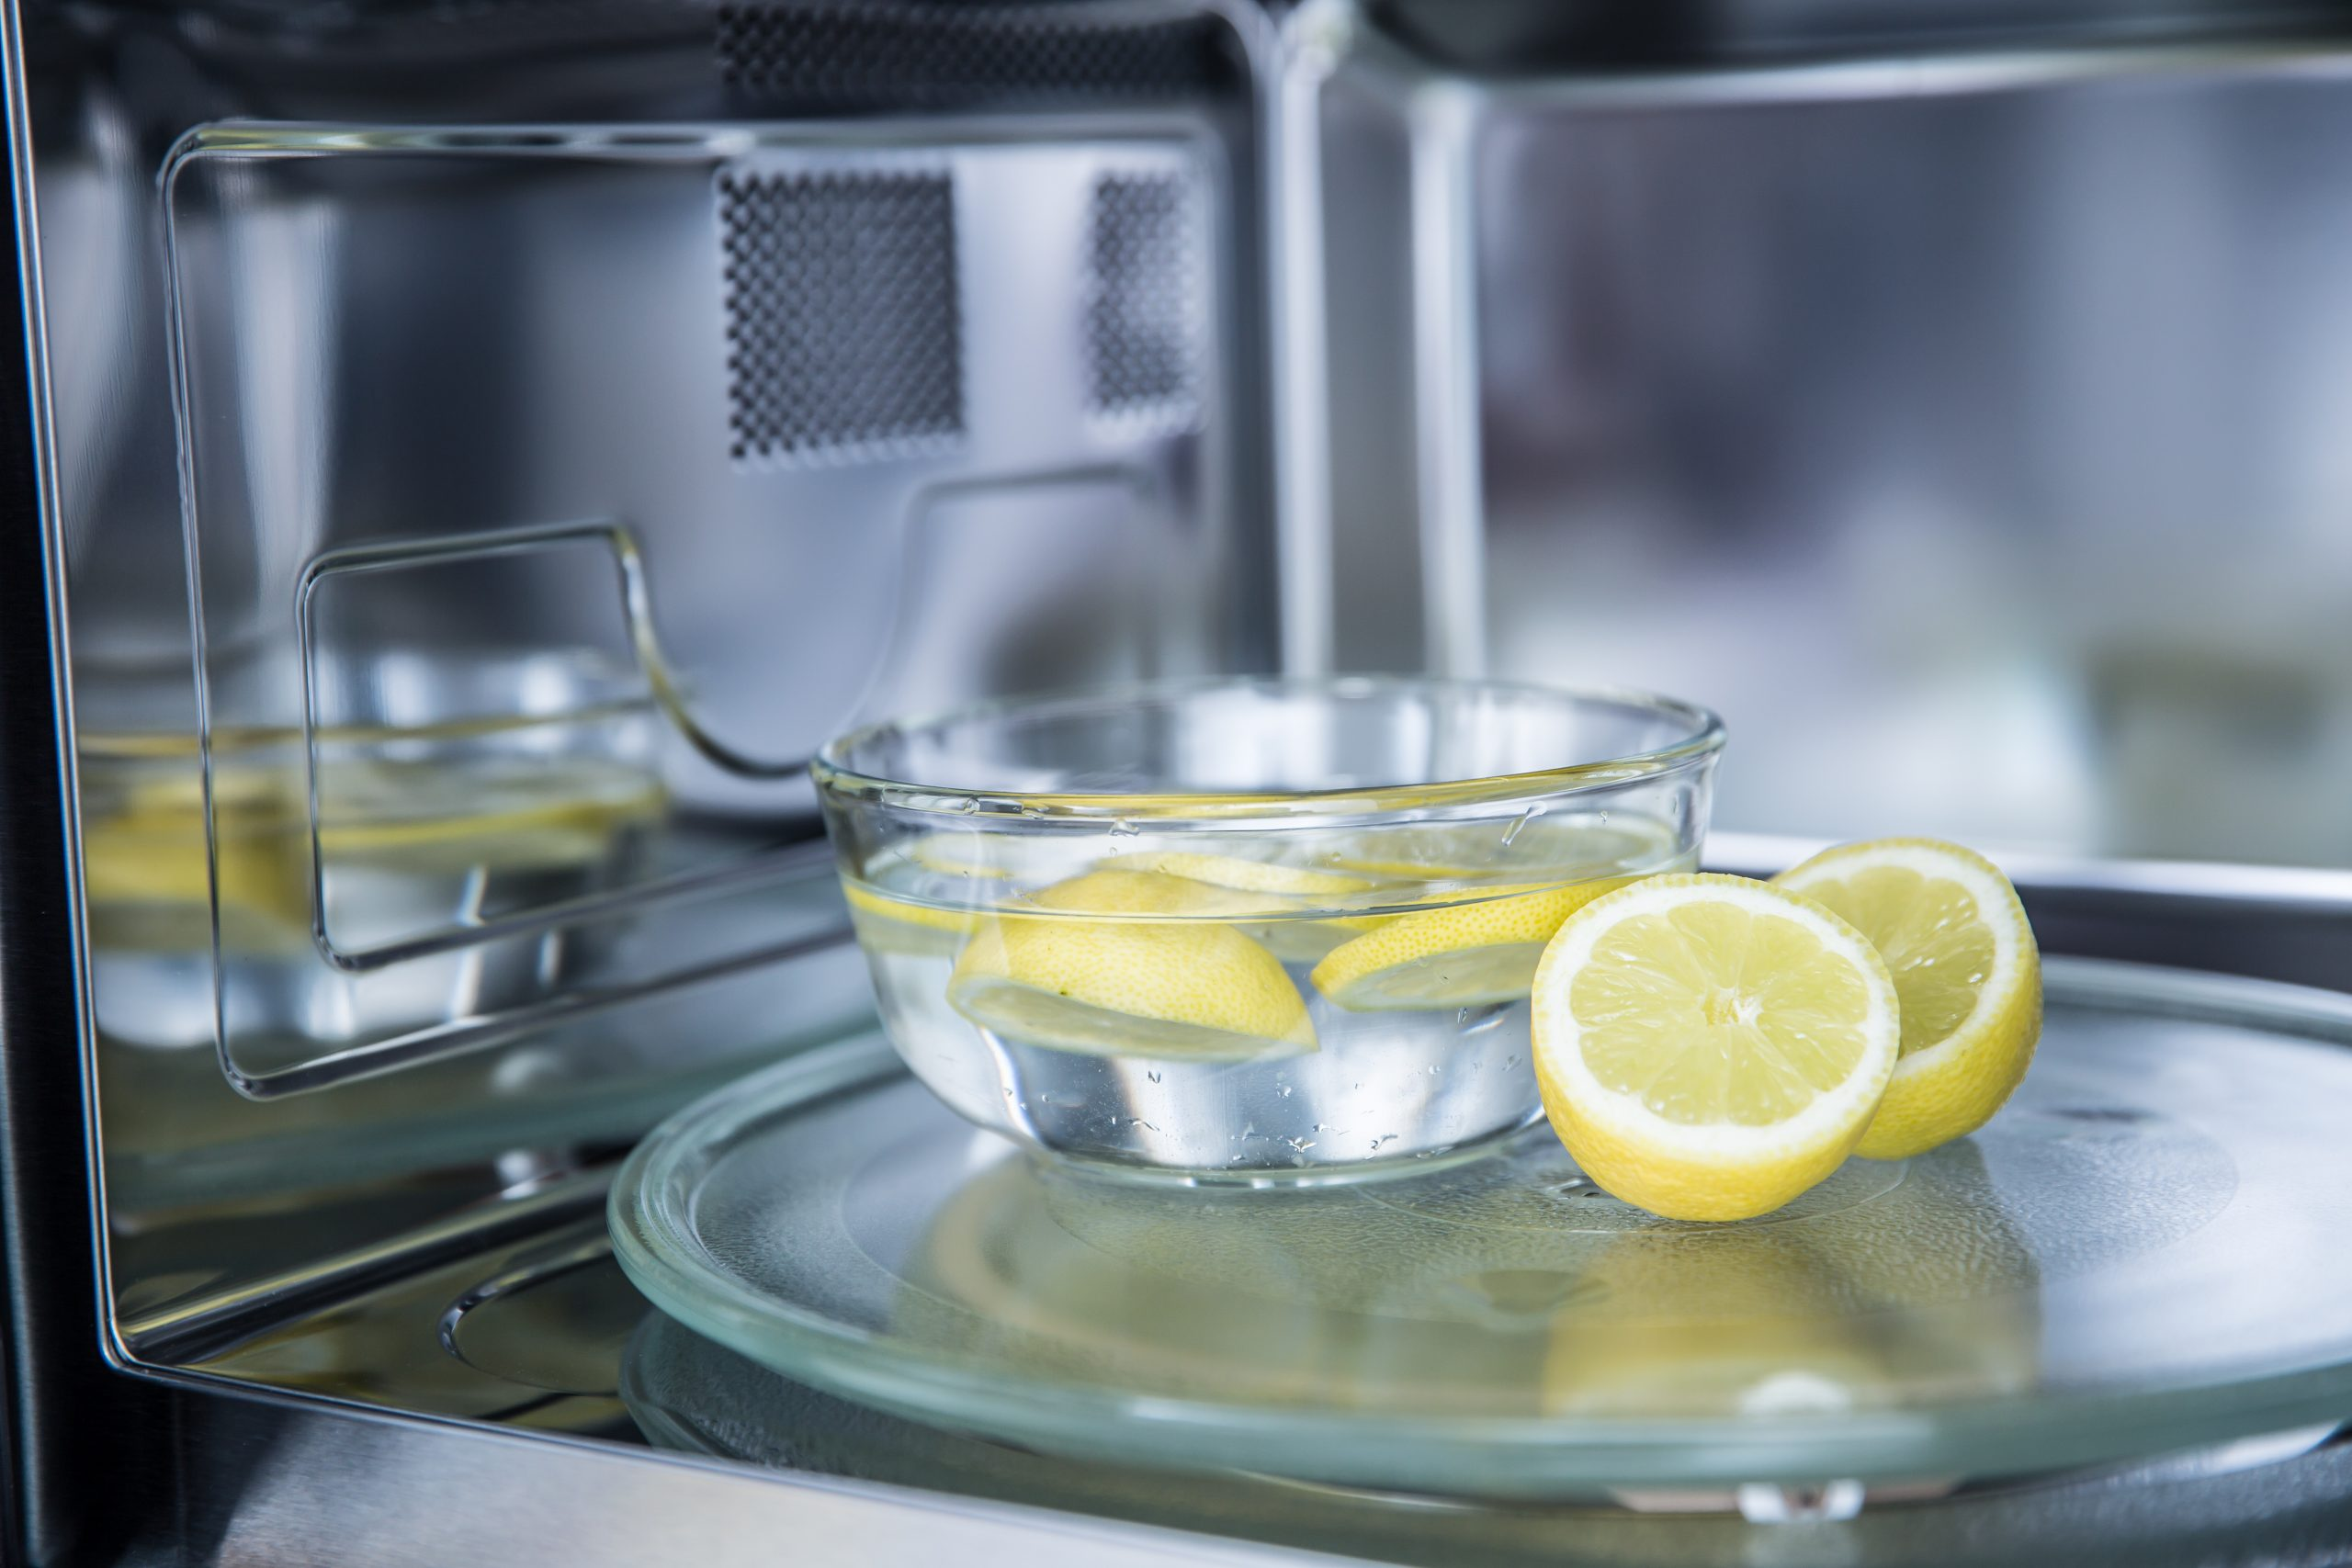 How to clean a microwave: Including a bit of lemon can add a hint of freshness to your vinegar solution!